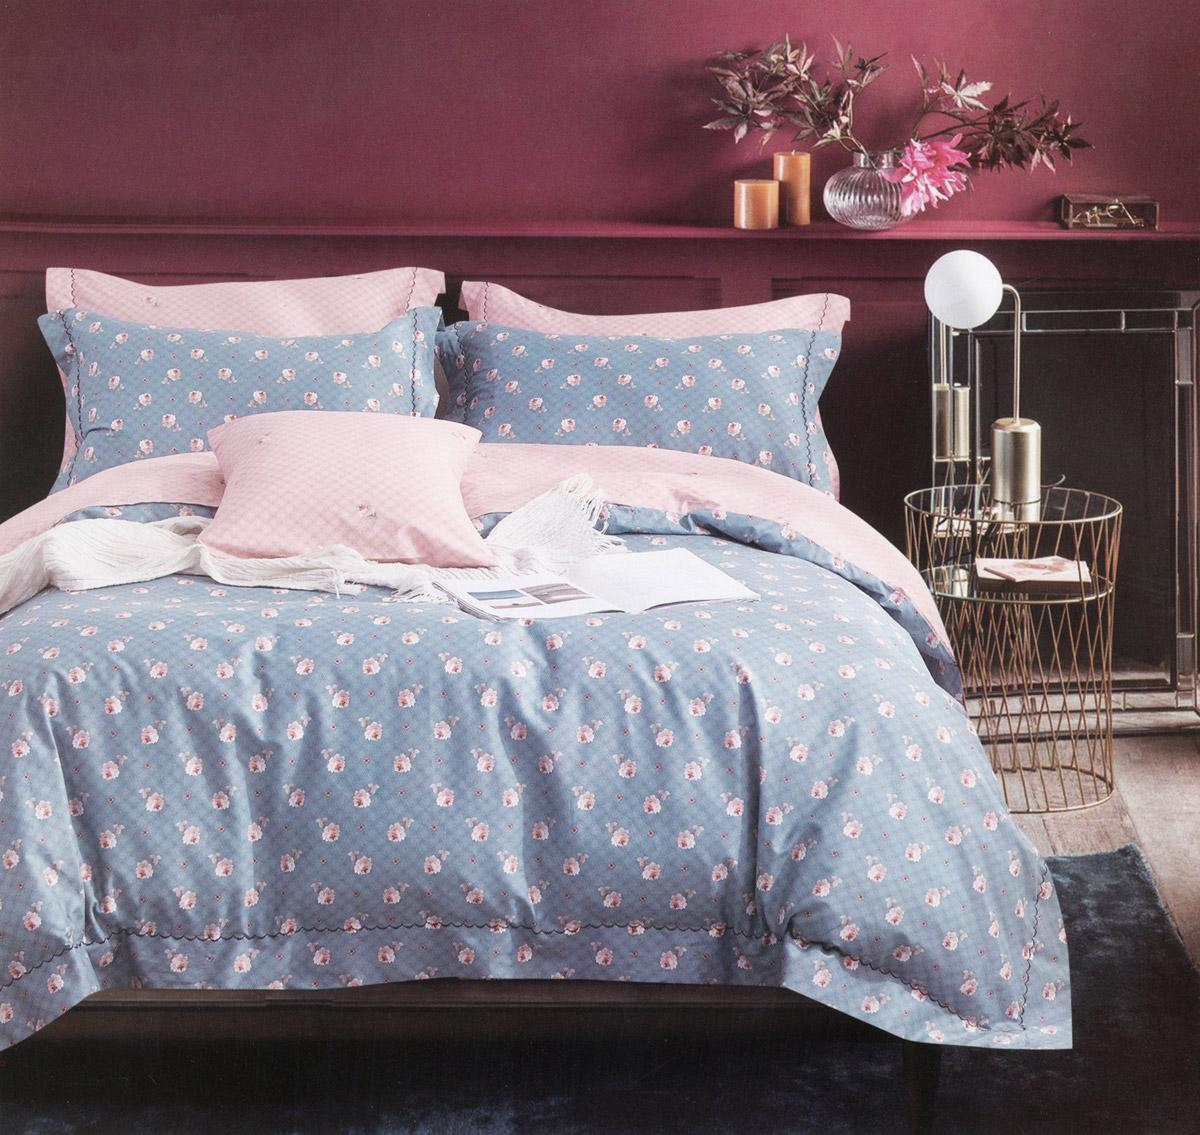 Four Season Floral Printed Double Bedsheet Light Blue